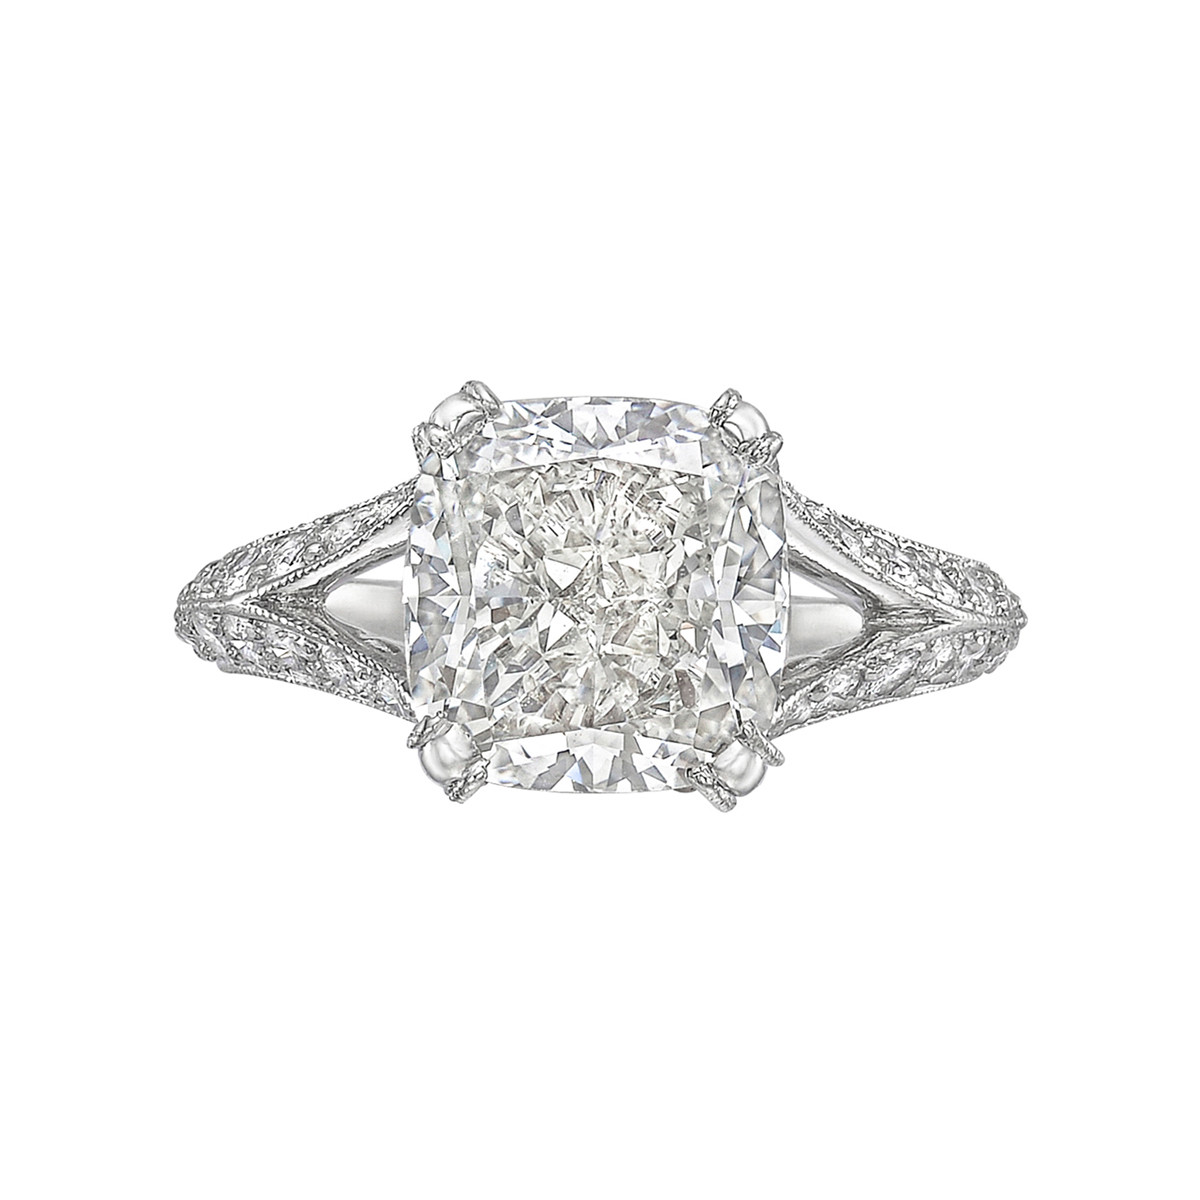 3.02ct Colorless Cushion-Cut Diamond Ring